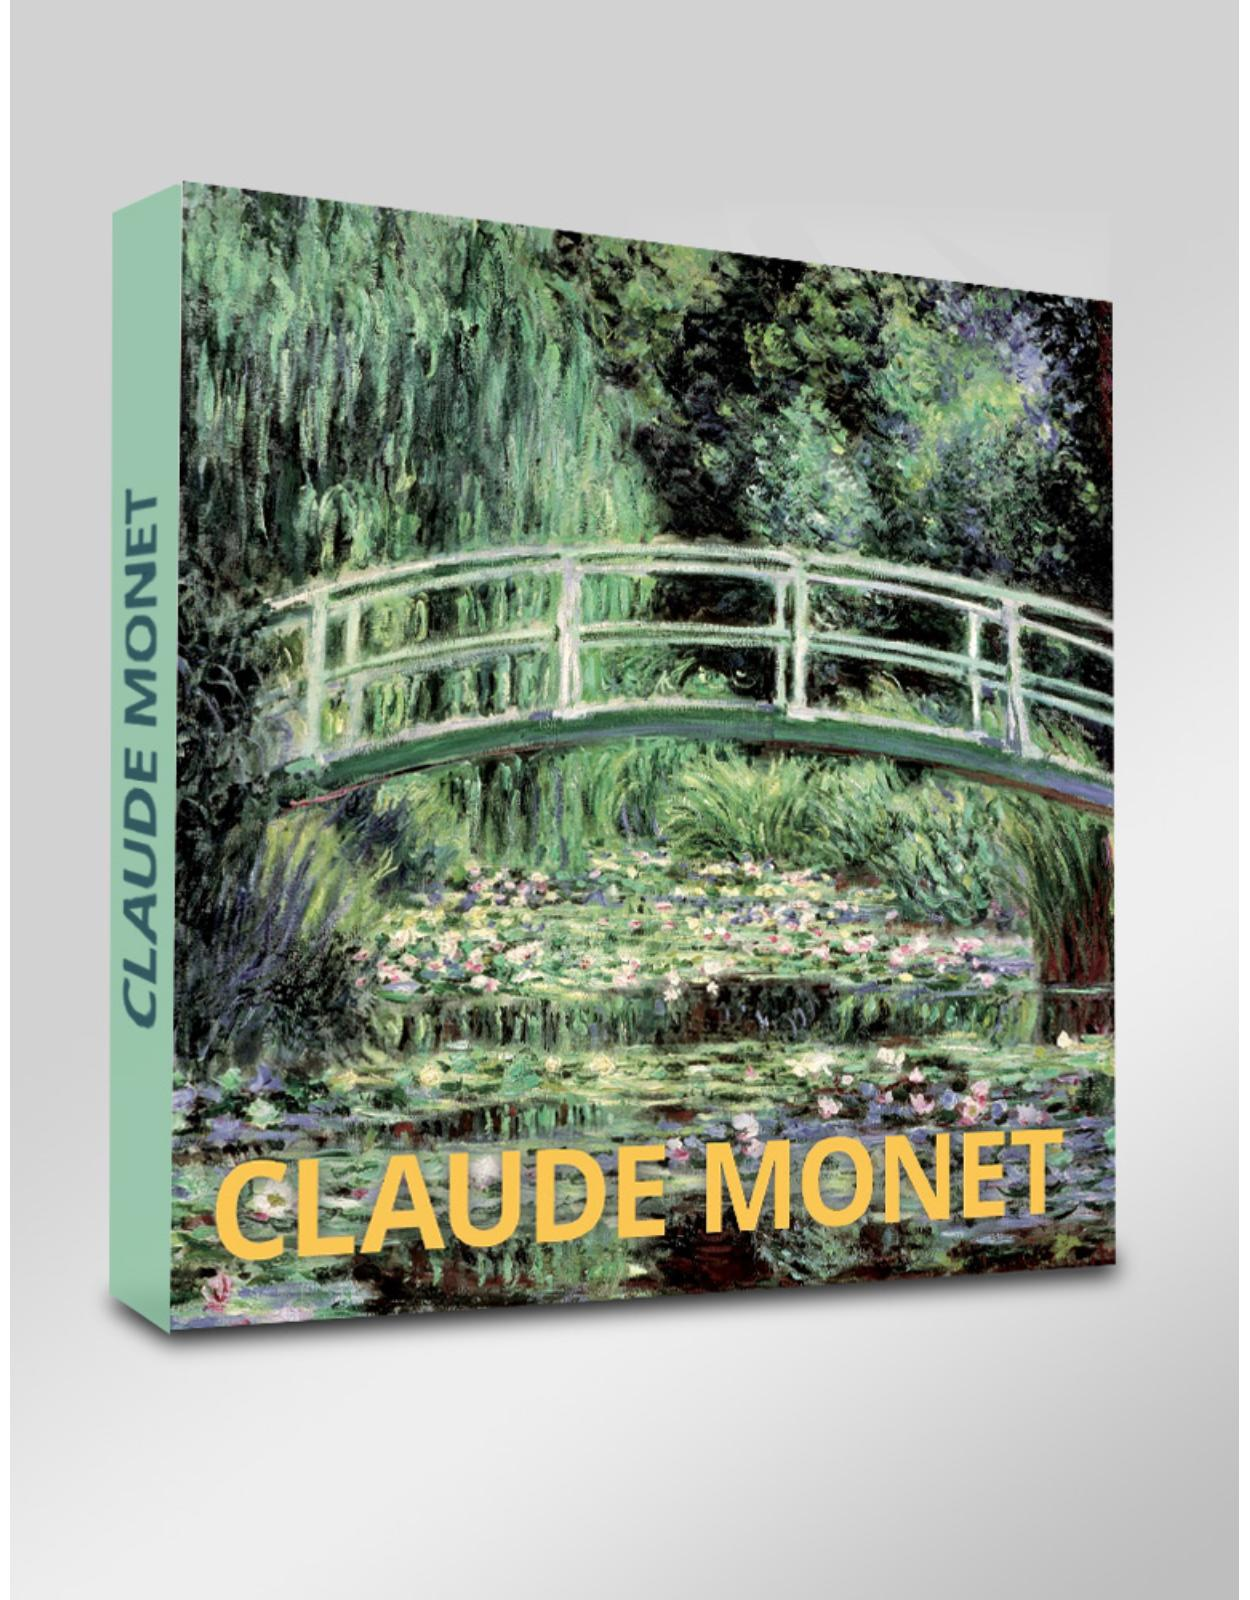 Album de artă Monet